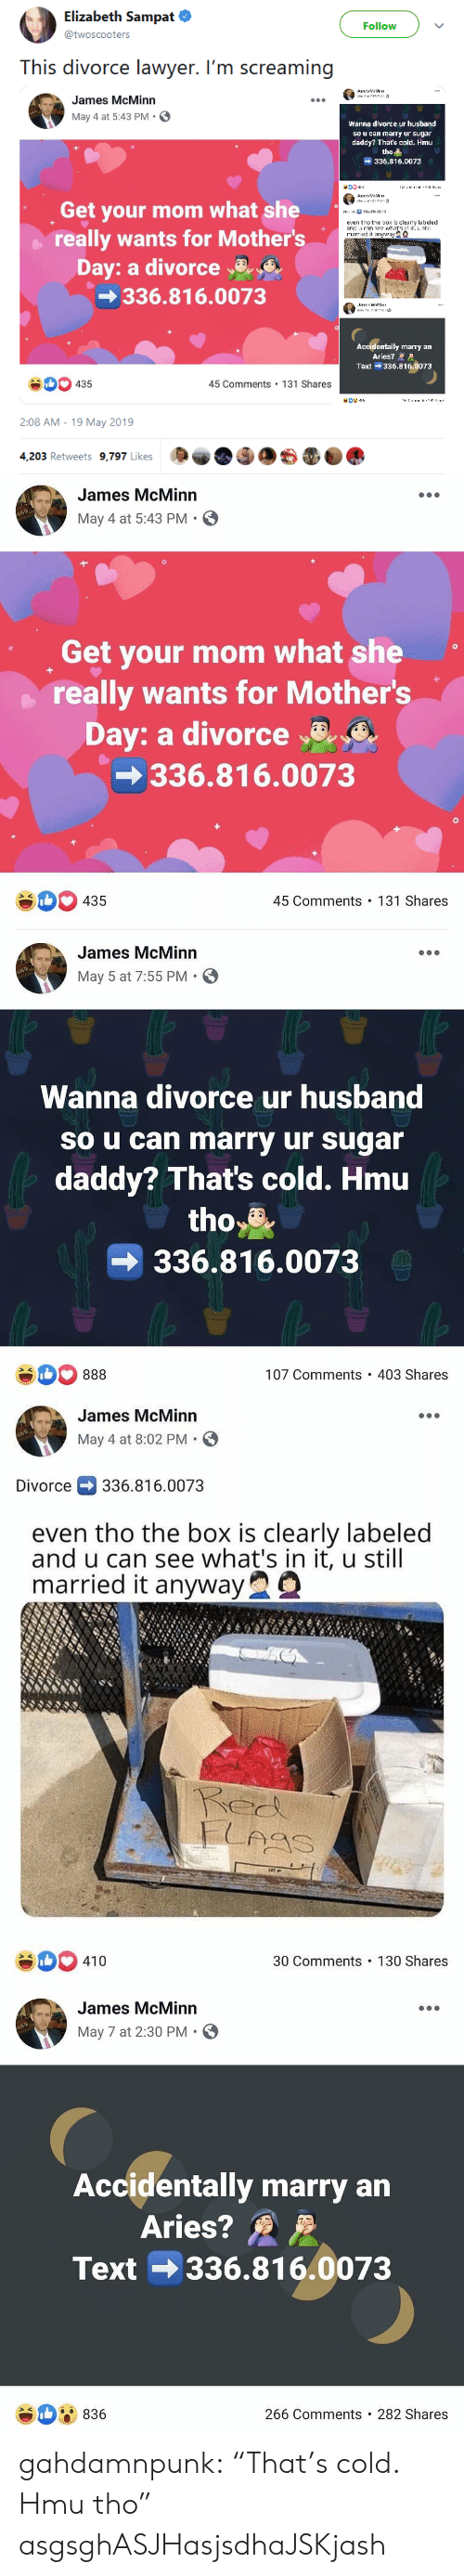 """sugar daddy: Elizabeth Sampat  Follow  @twoscooters  This divorce lawyer. I'm screaming  James McMinn  May 4 at 5:43 PM.  Wanna dlvorce ur husband  so u can marry ur sugar  daddy? That's cold. Hmu  ャ  tho  336.816.0073  Get your mom what she  even tho te  clealebeled  really wants for Mother's  Day: a divorceaE  336.816.0073  lly marry an  Aries? A  Text 336.816.0073  Ac  0435  45 Comments 131 Shares  2:08 AM -19 May 2019  4,203 Retweets 9,797 Likes   James McMinn  May 4 at 5:43 PM.  Get your mom what she  really wants for Mother's  Day: a divorce  336.816.0073  #00 435  45 Comments 131 Shares   James McMinn  May 5 at 7:55 PM  Wanna divorce ur husband  so u can marry ur sugar  daddy? That's cold. Hmu  tho*  336.816.0073  107 Comments 403 Shares   James McMinn  May 4 at 8:02 PM.  Divorce336.816.0073  even tho the box is clearly labeled  and u can see what's in it, u still  married it anywayQ  xNx  30 Comments 130 Shares  410   James McMinn  May 7 at 2:30 PM S  Accidentally marry an  Aries?  Text 336.816.0073  836  266 Comments 282 Shares gahdamnpunk:  """"That's cold. Hmu tho"""" asgsghASJHasjsdhaJSKjash"""